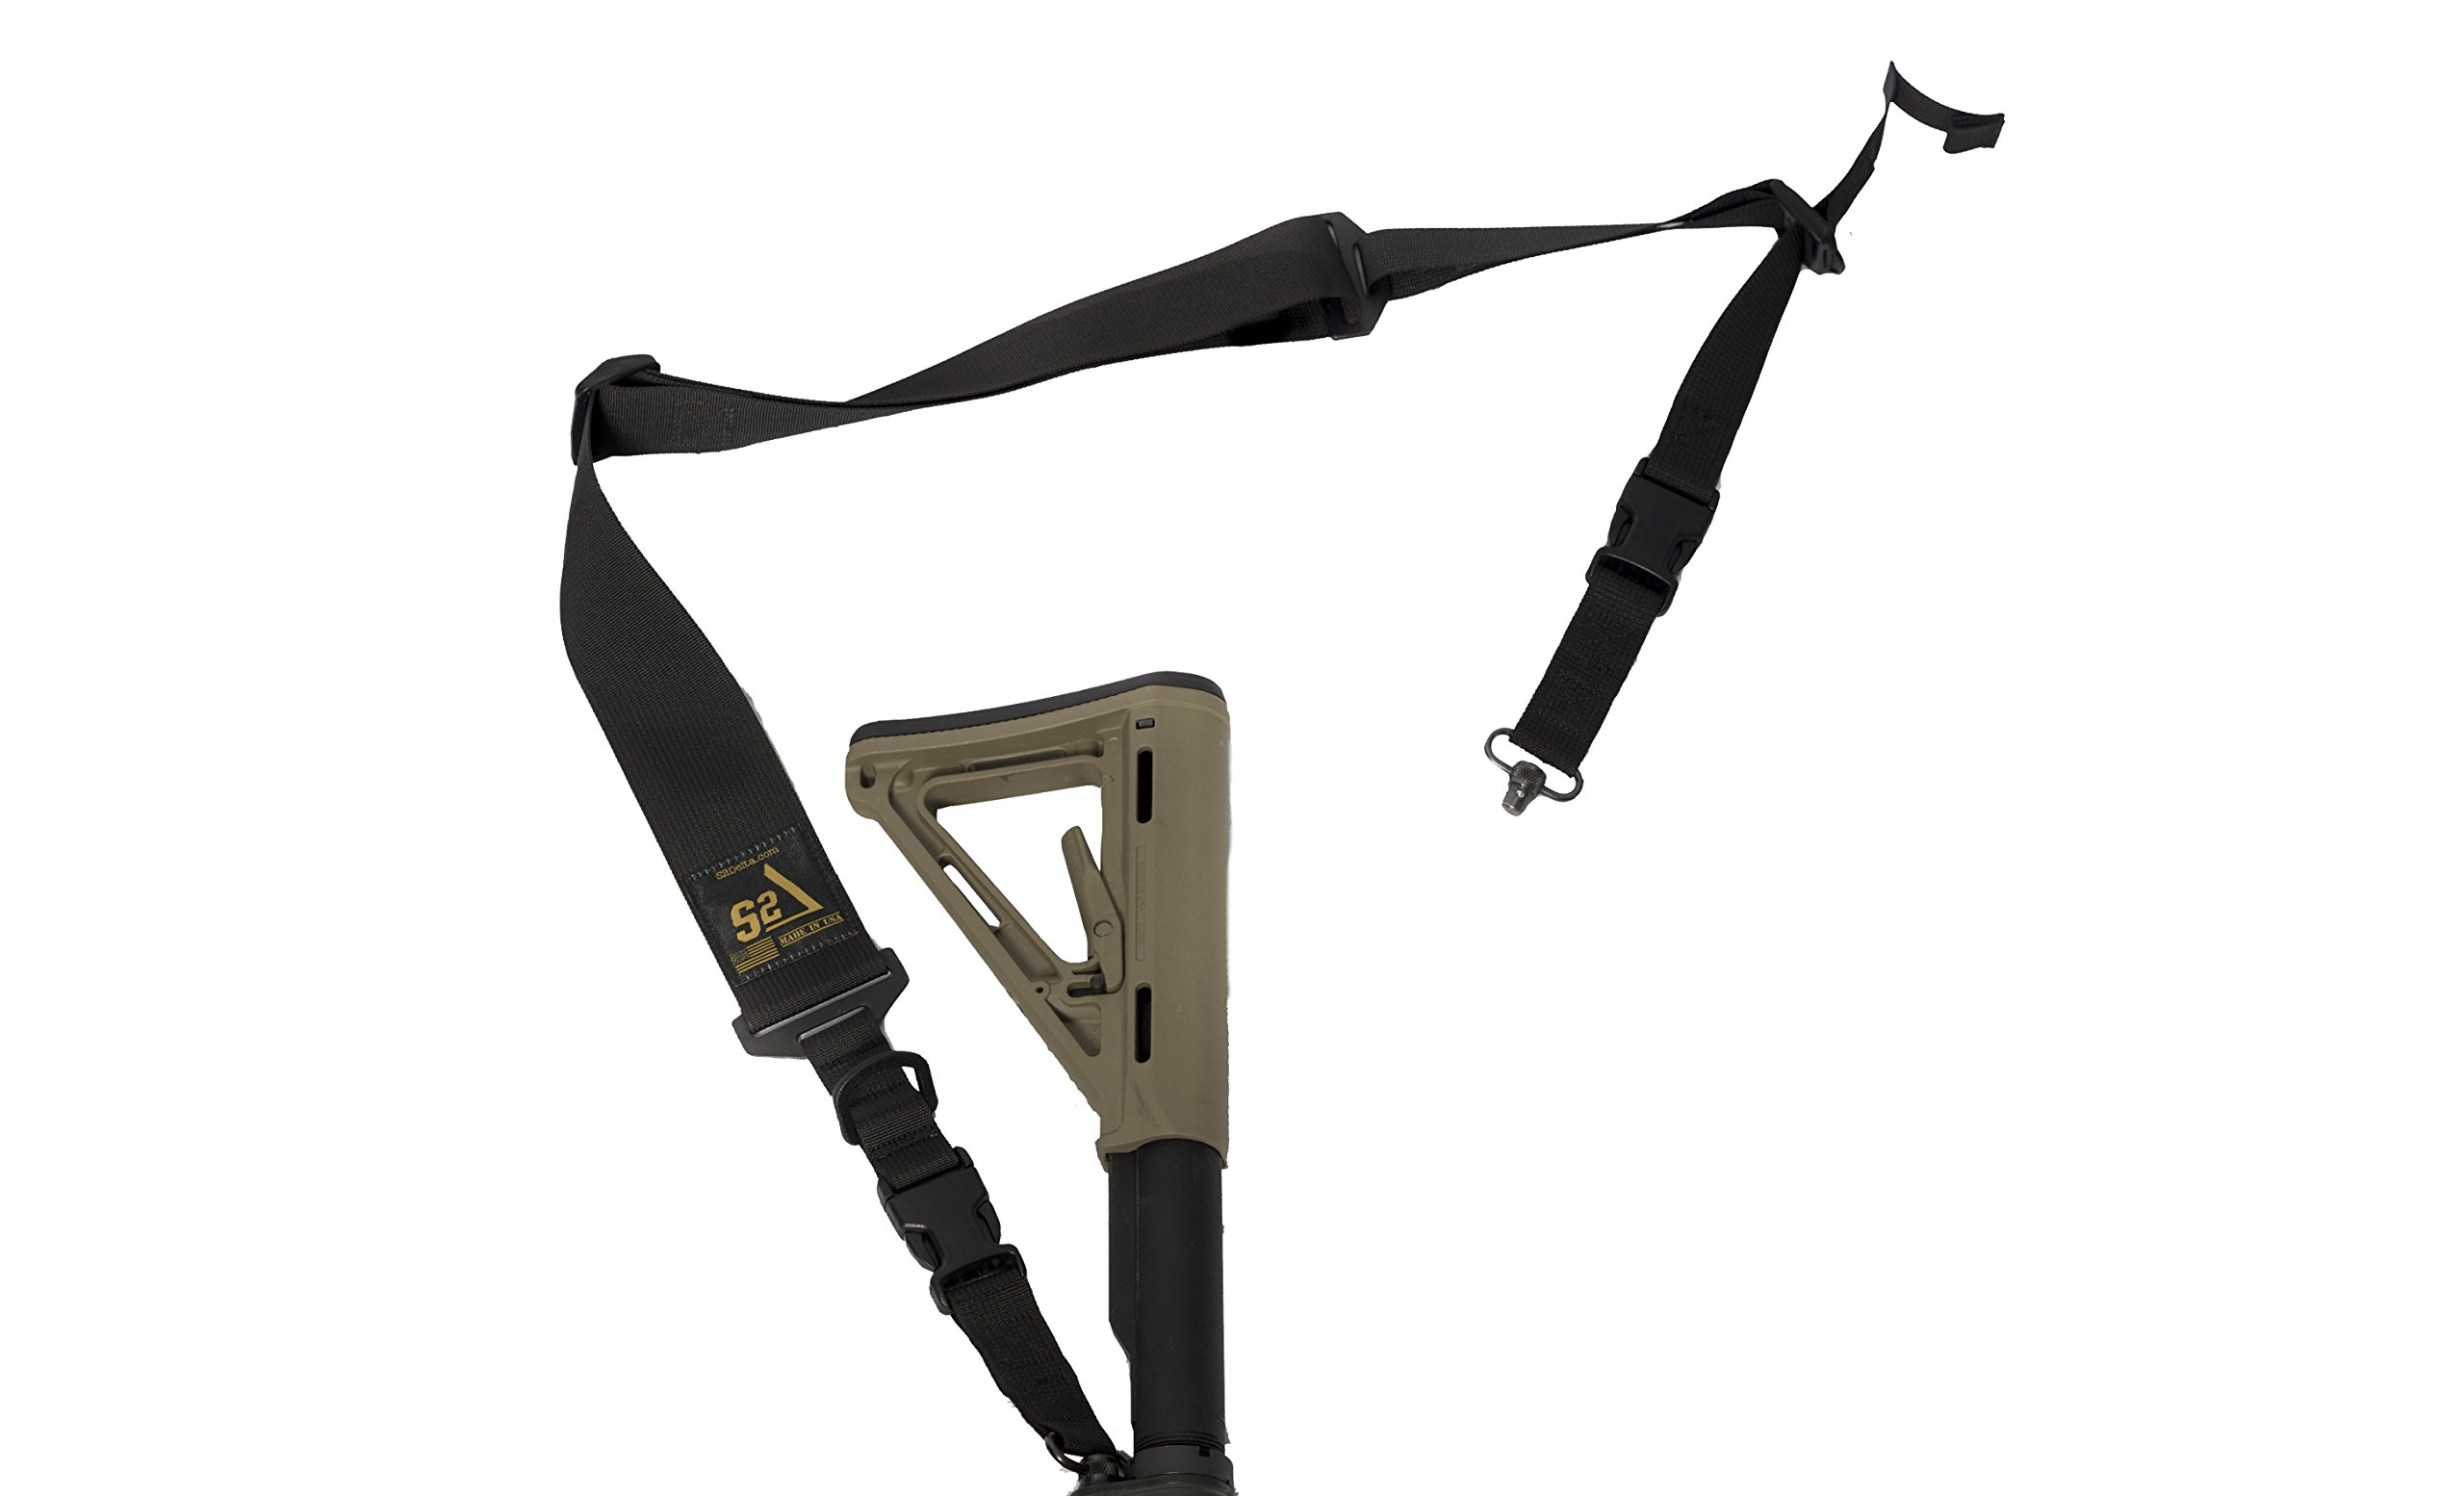 "S2Delta - USA Made Premium 2 Point Rifle Sling, Fast Adjustment, Modular Attachment Connections, Comfortable 2"" Wide Shoulder Strap"